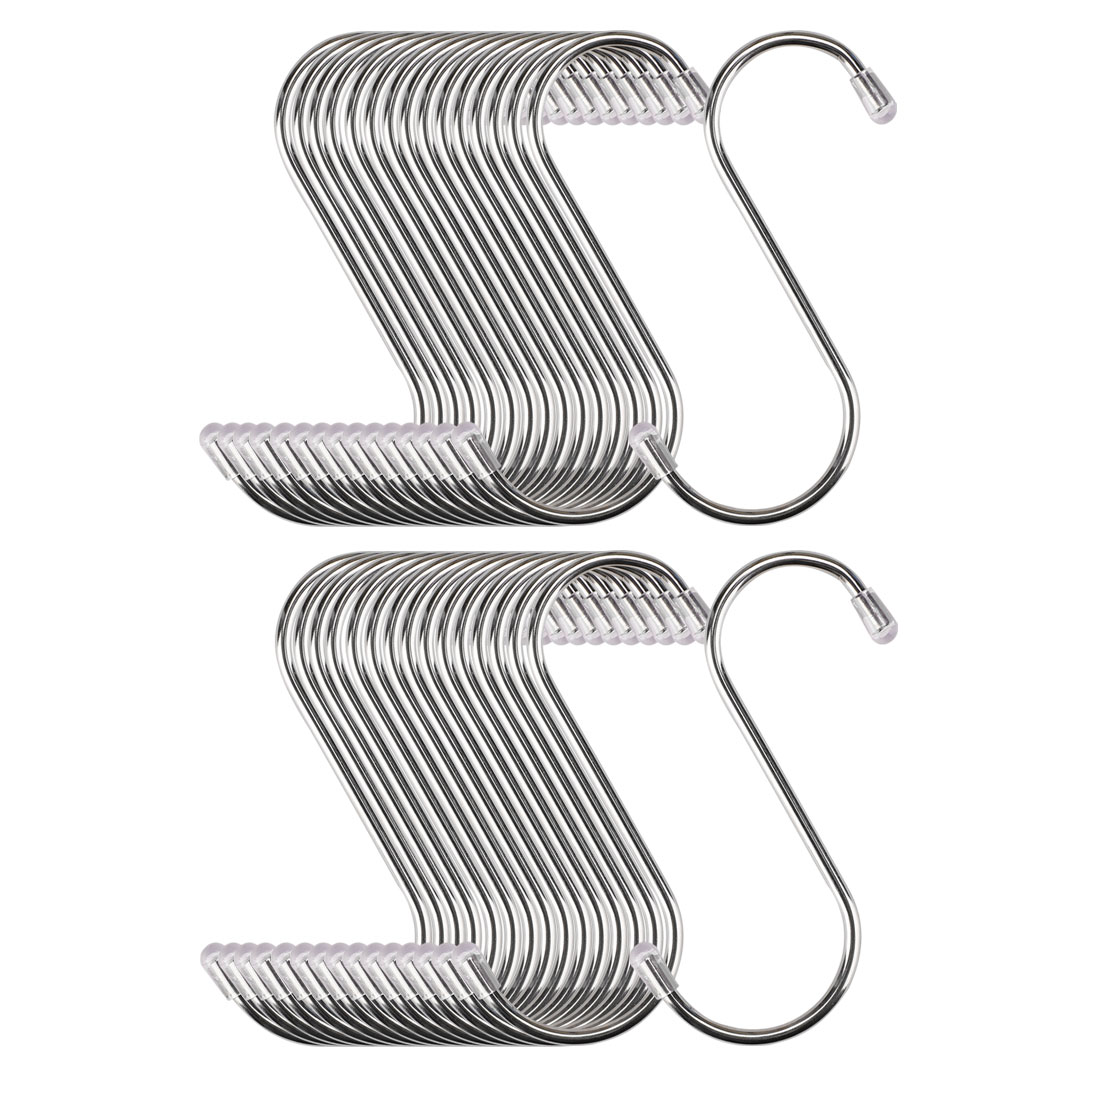 S Shape Hook Rack Stainless Steel for Kitchenware Clothes Utensil Holder 32 Pack